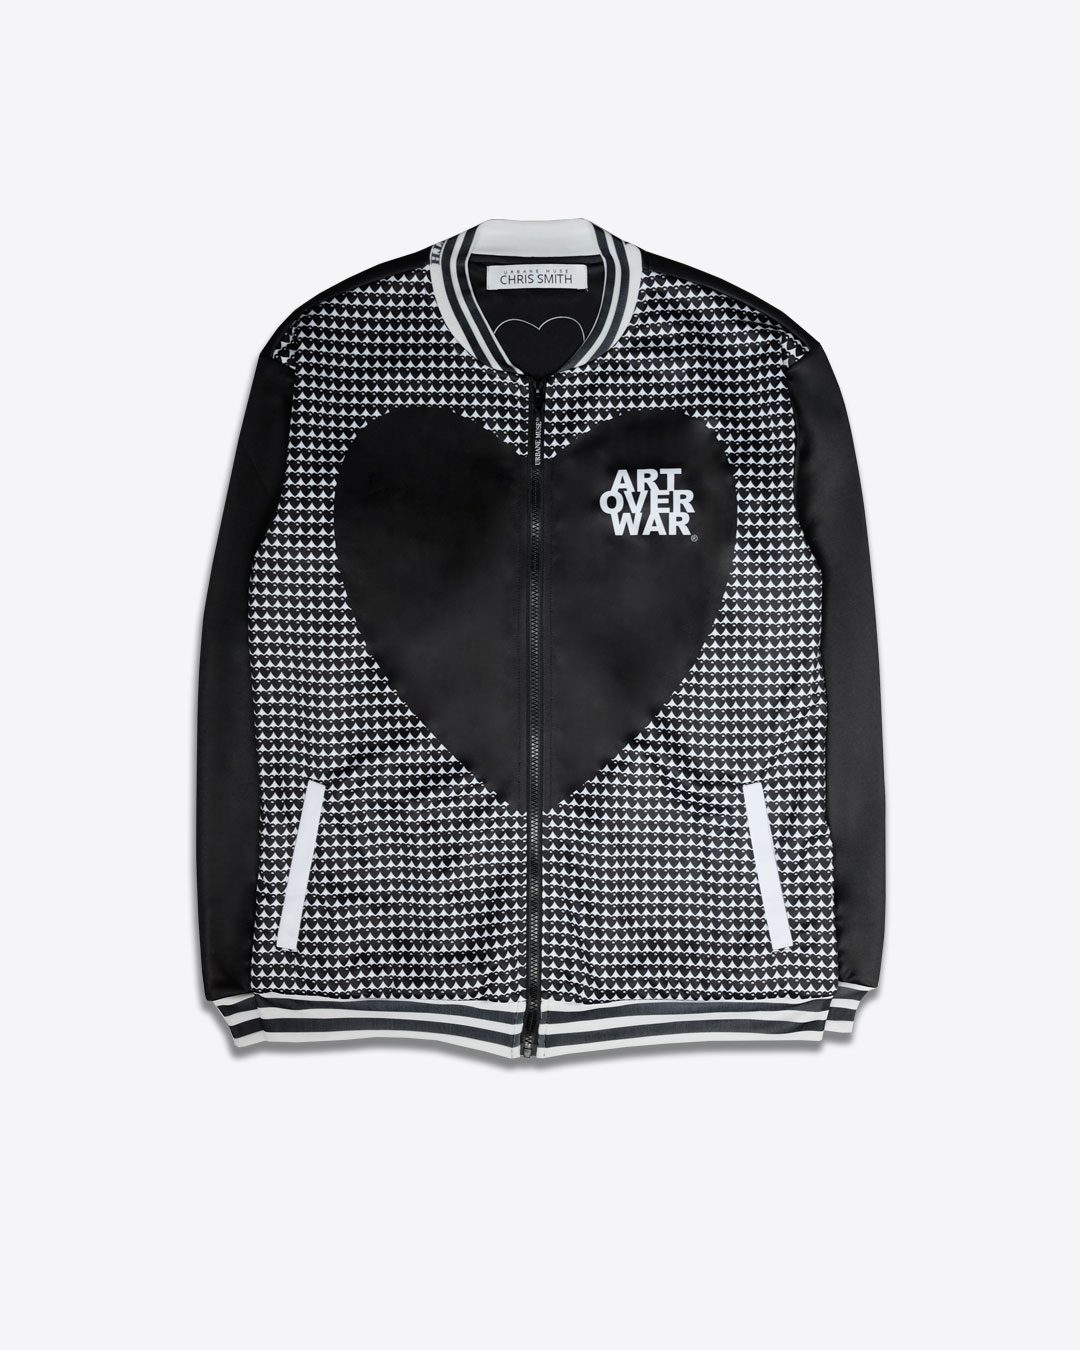 HEART-LOGO-photo11-URBANE-MUSE-CHRIS-SMITH-BOMBER-JACKET-with-Lining